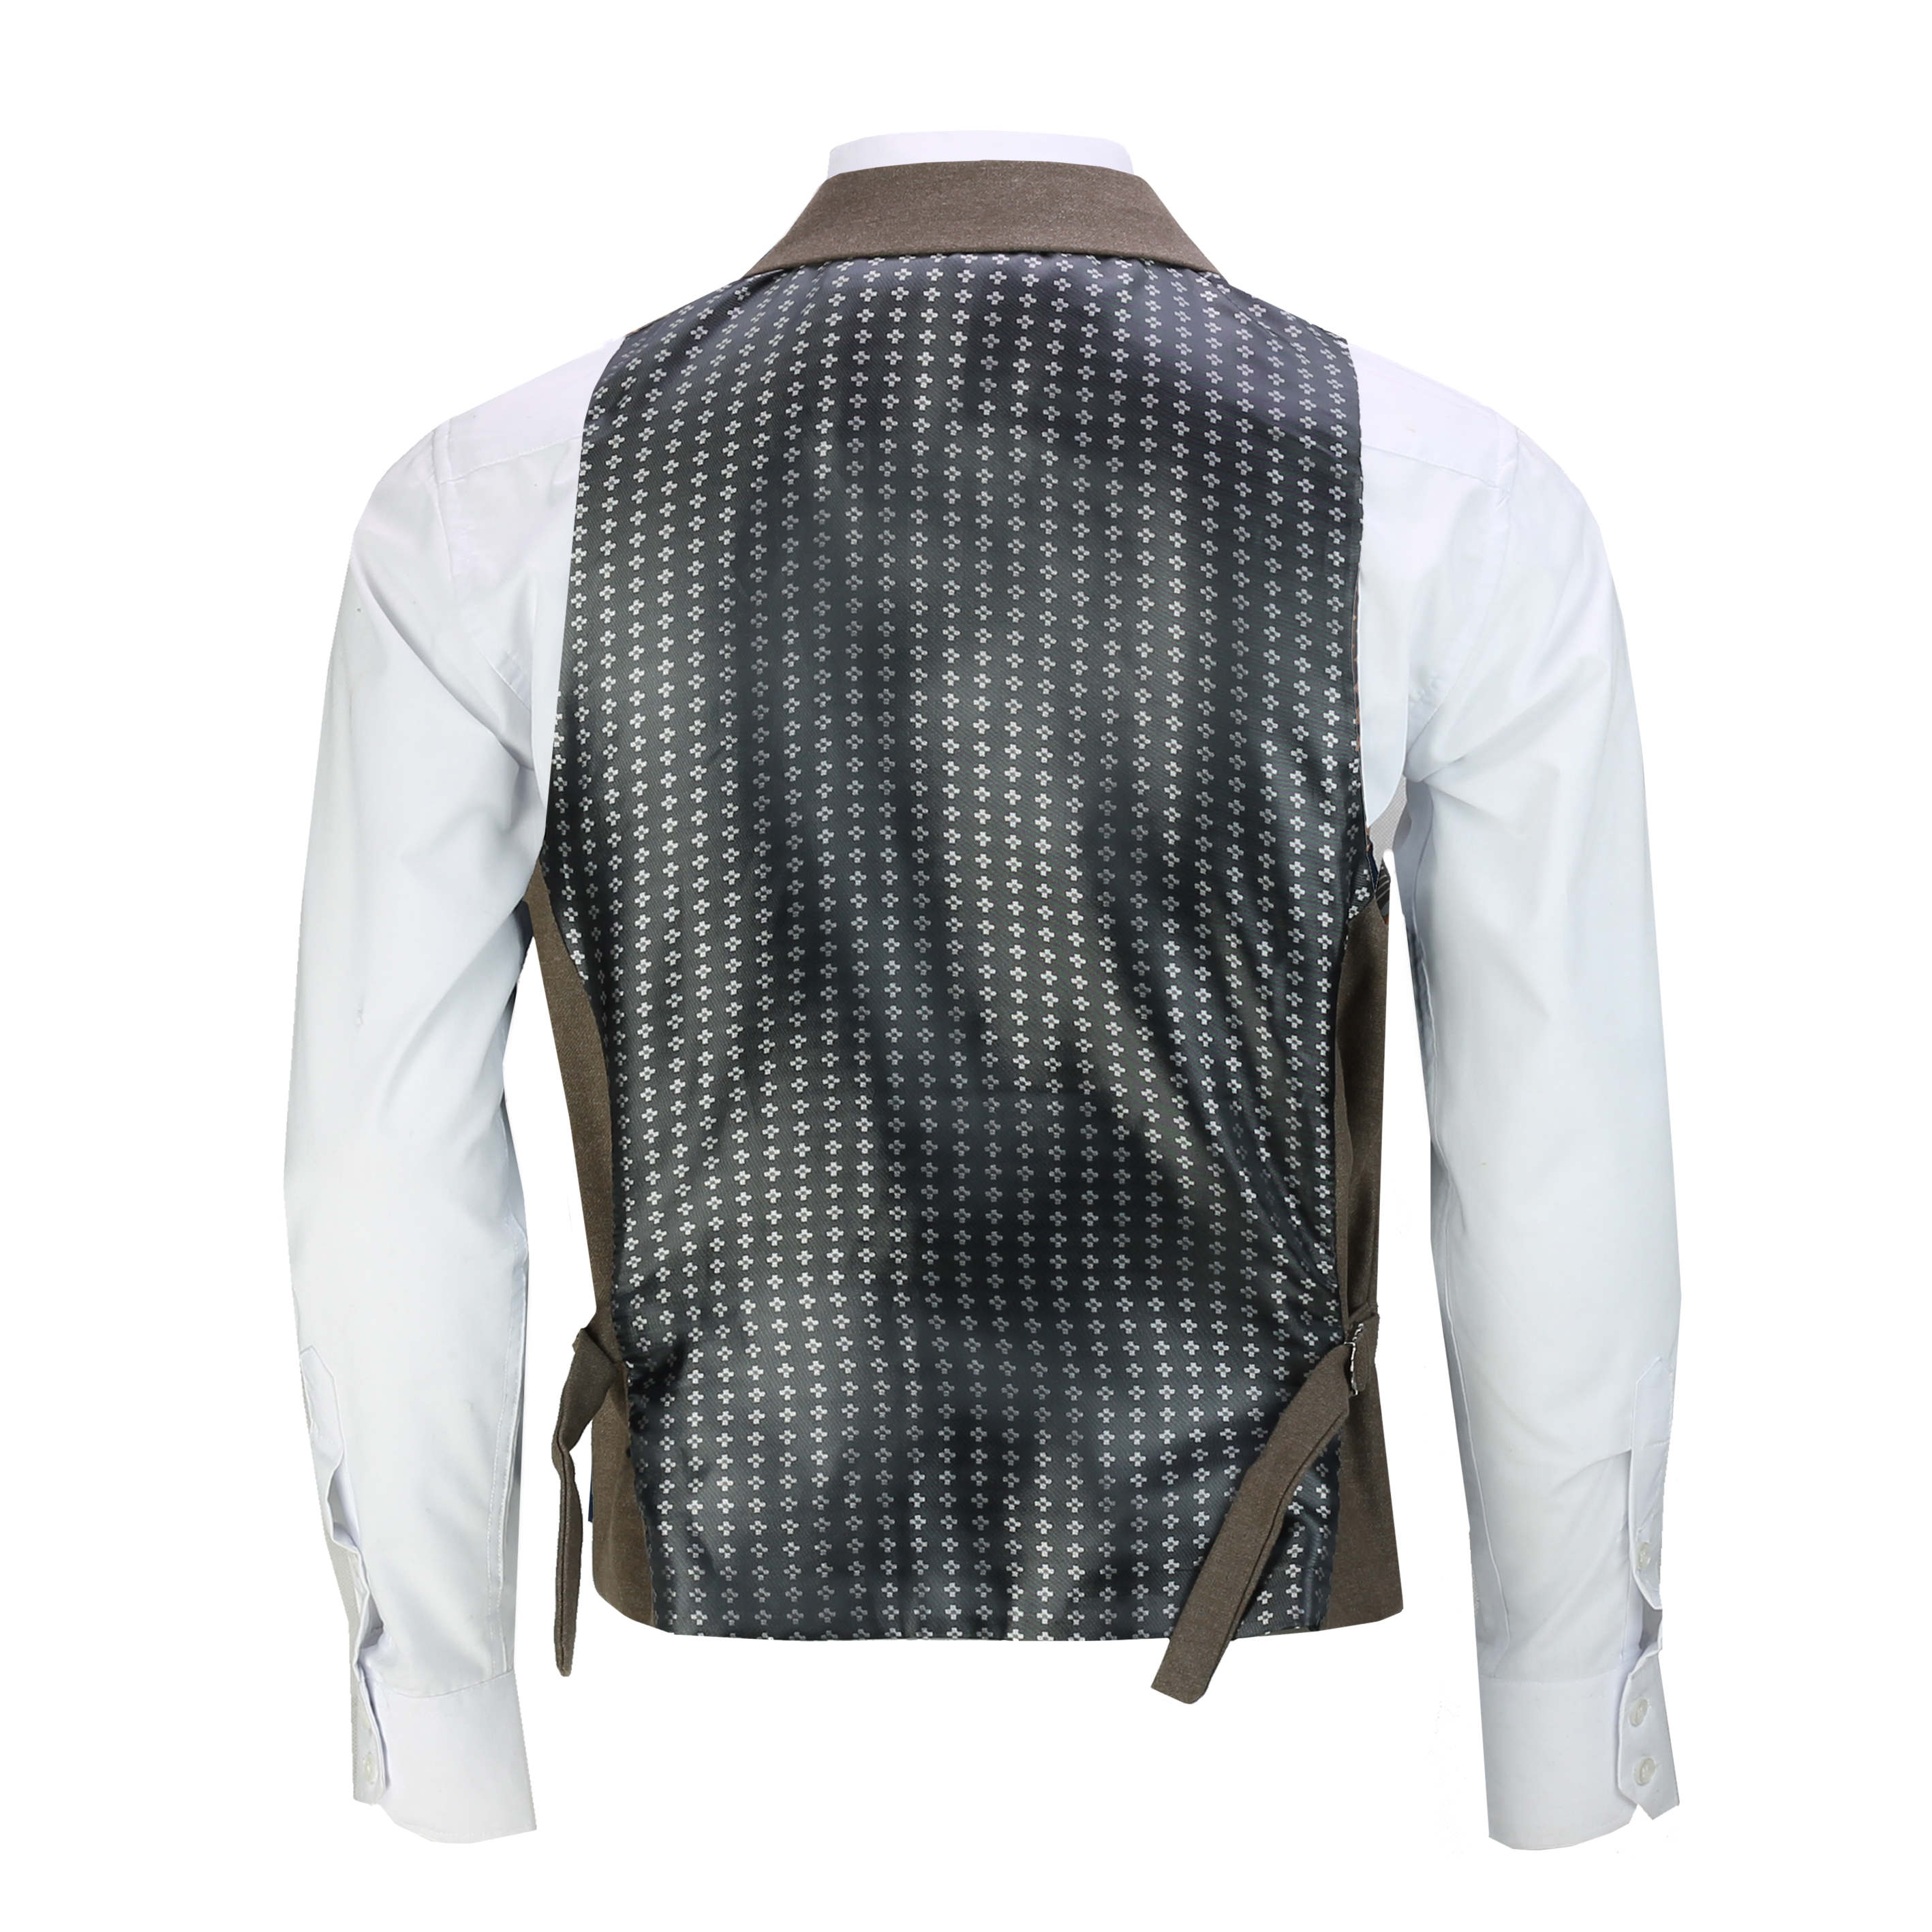 Mens-Classic-Collar-Waistcoat-Retro-Vintage-Style-Tailored-Fit-Smart-Formal-Vest thumbnail 10